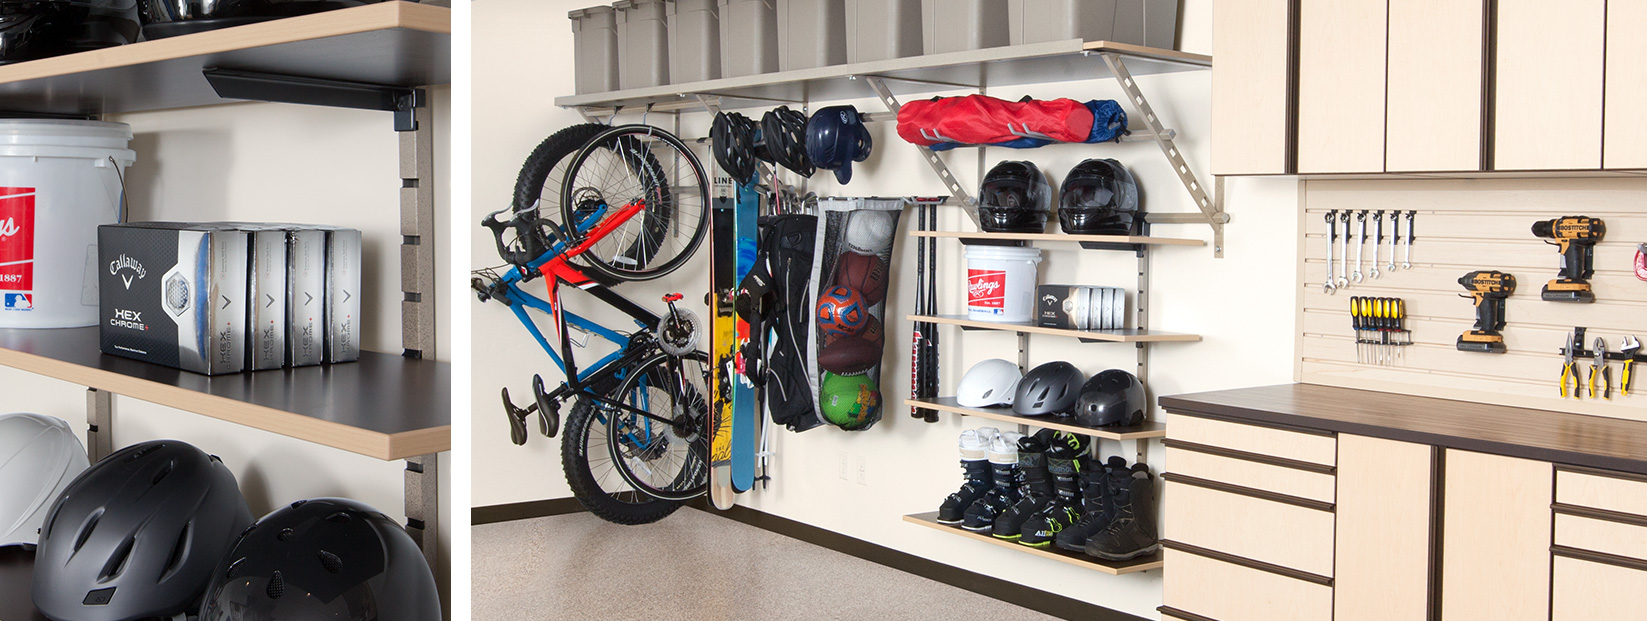 Garage Shelving System Richmond, VA